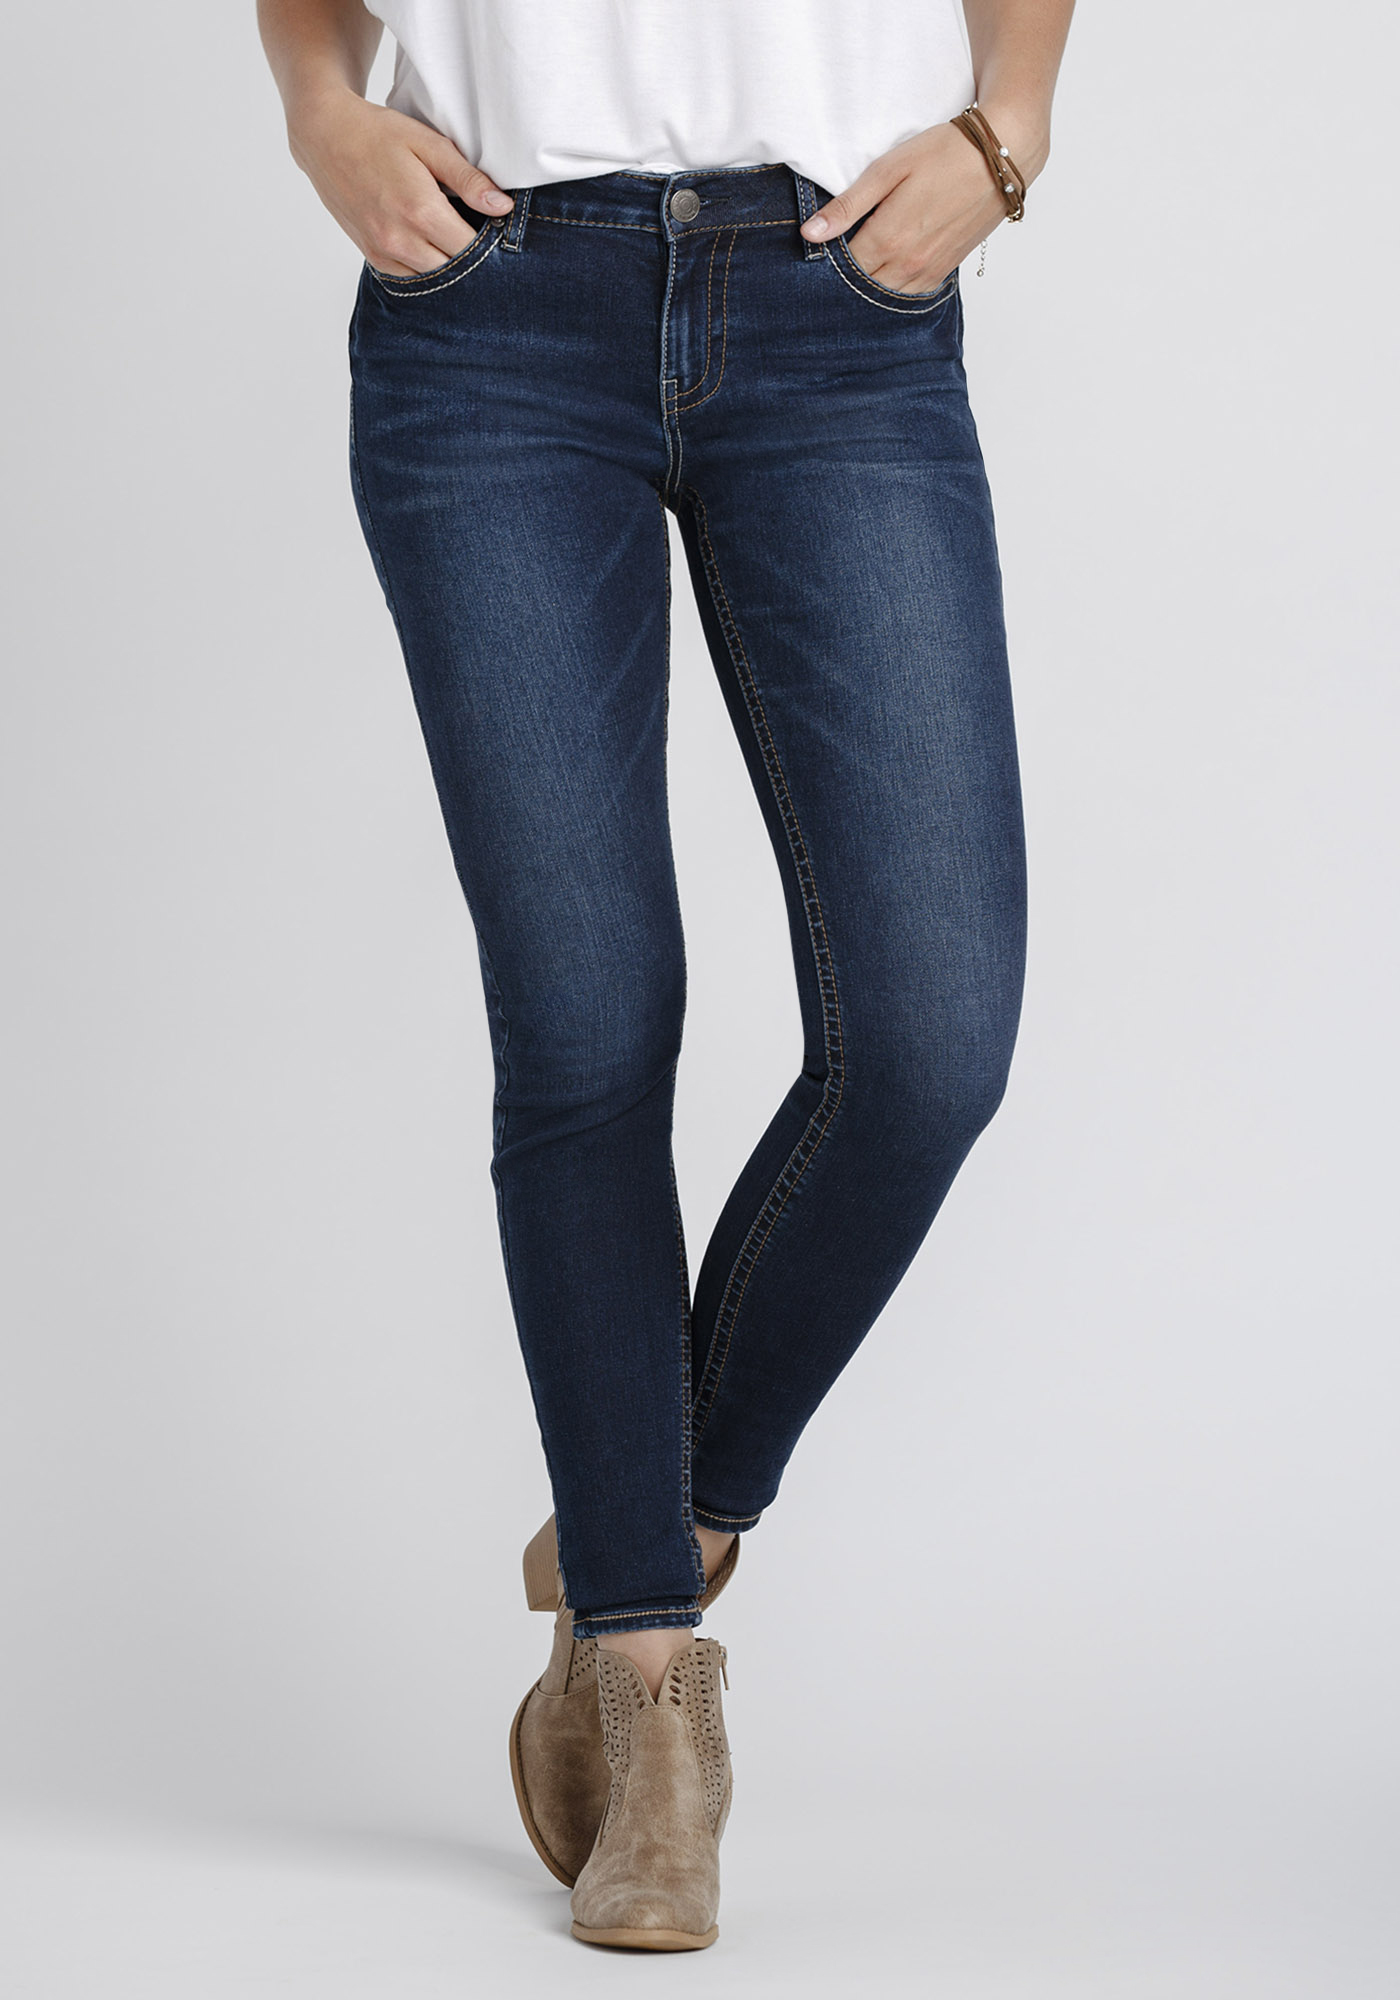 Womens Indigo Stacked Button Skinny Jeans   Warehouse One